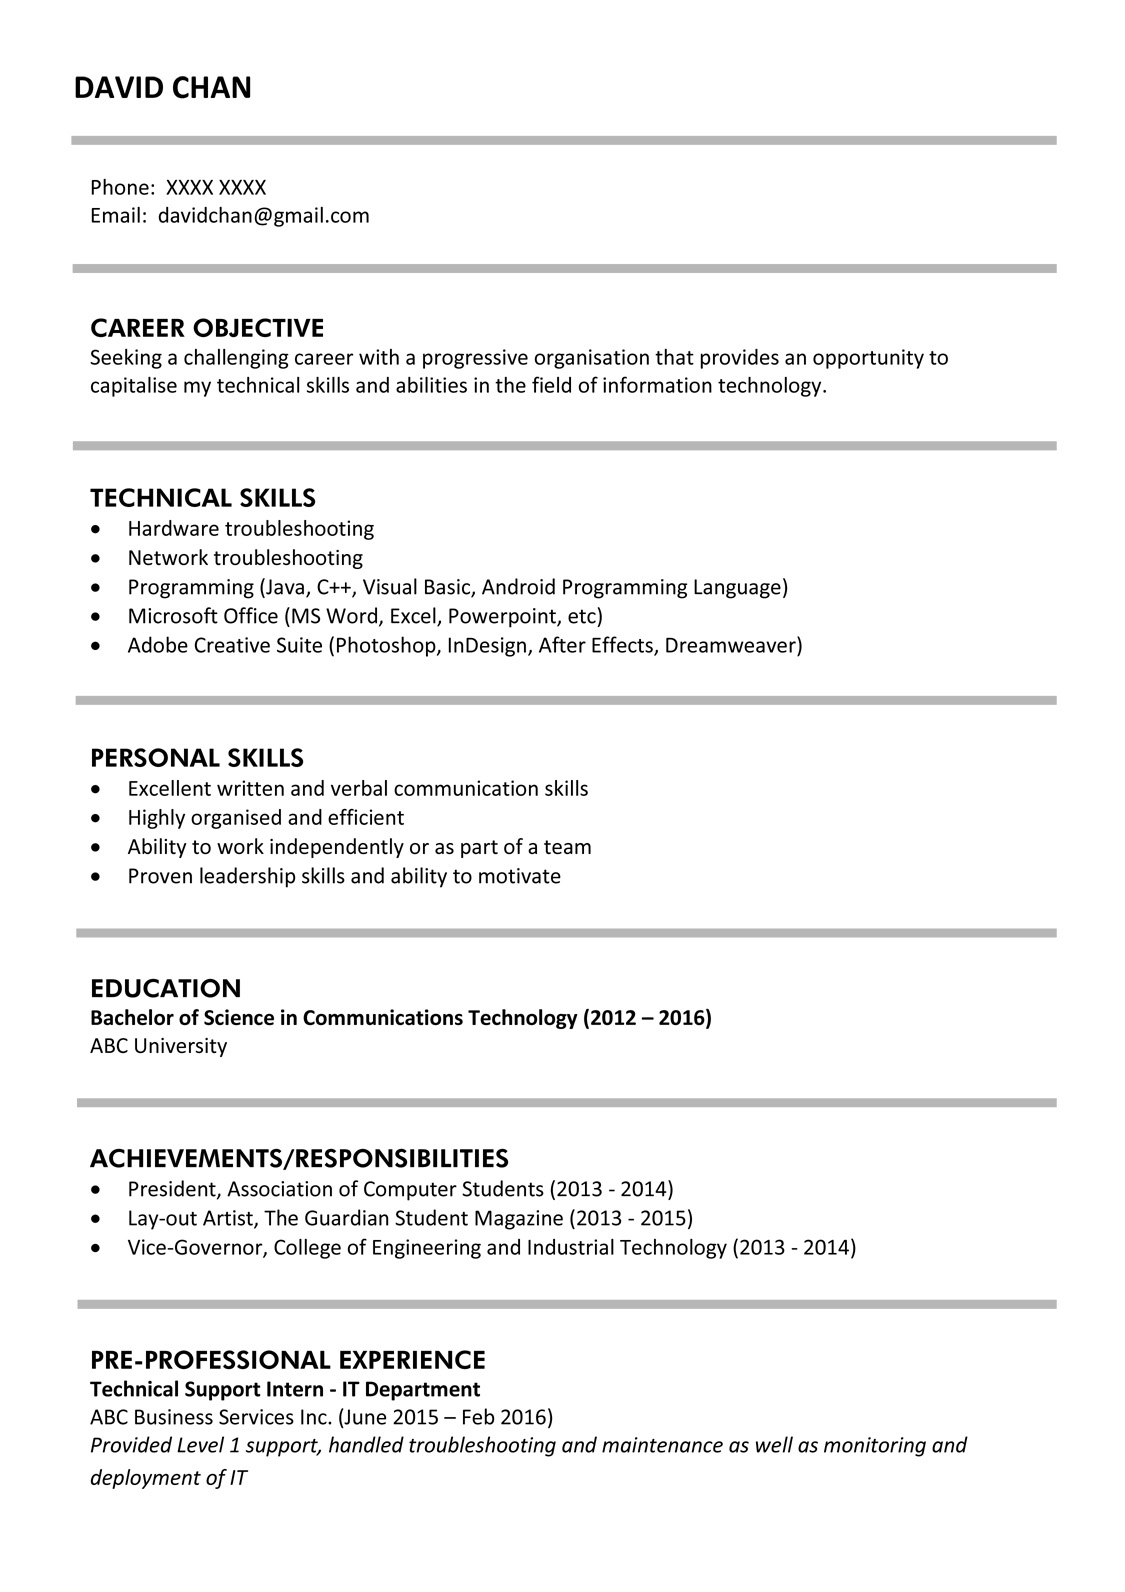 sample text resume